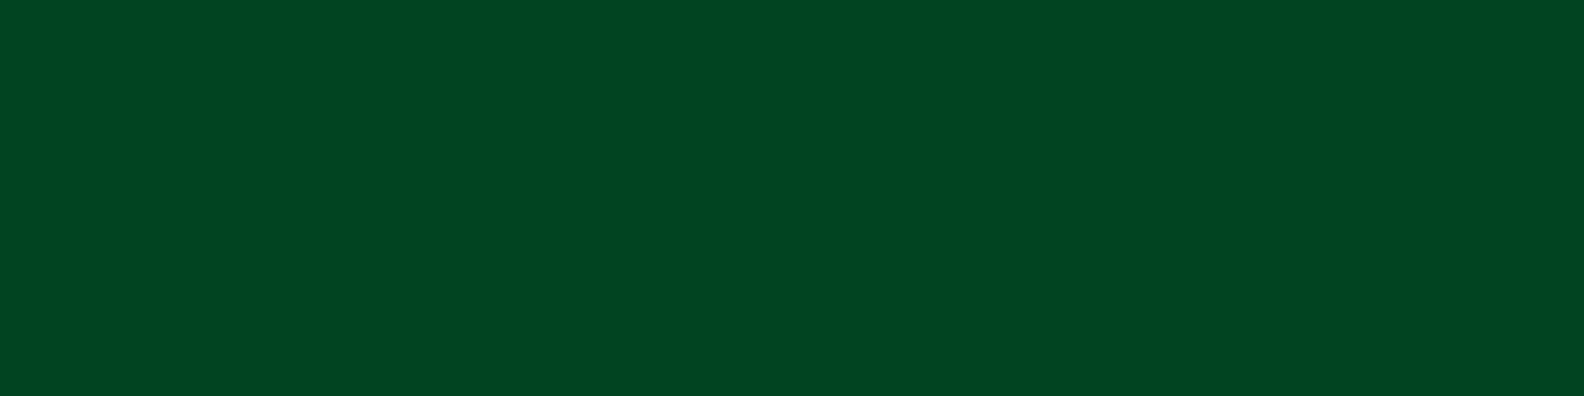 1584x396 UP Forest Green Solid Color Background